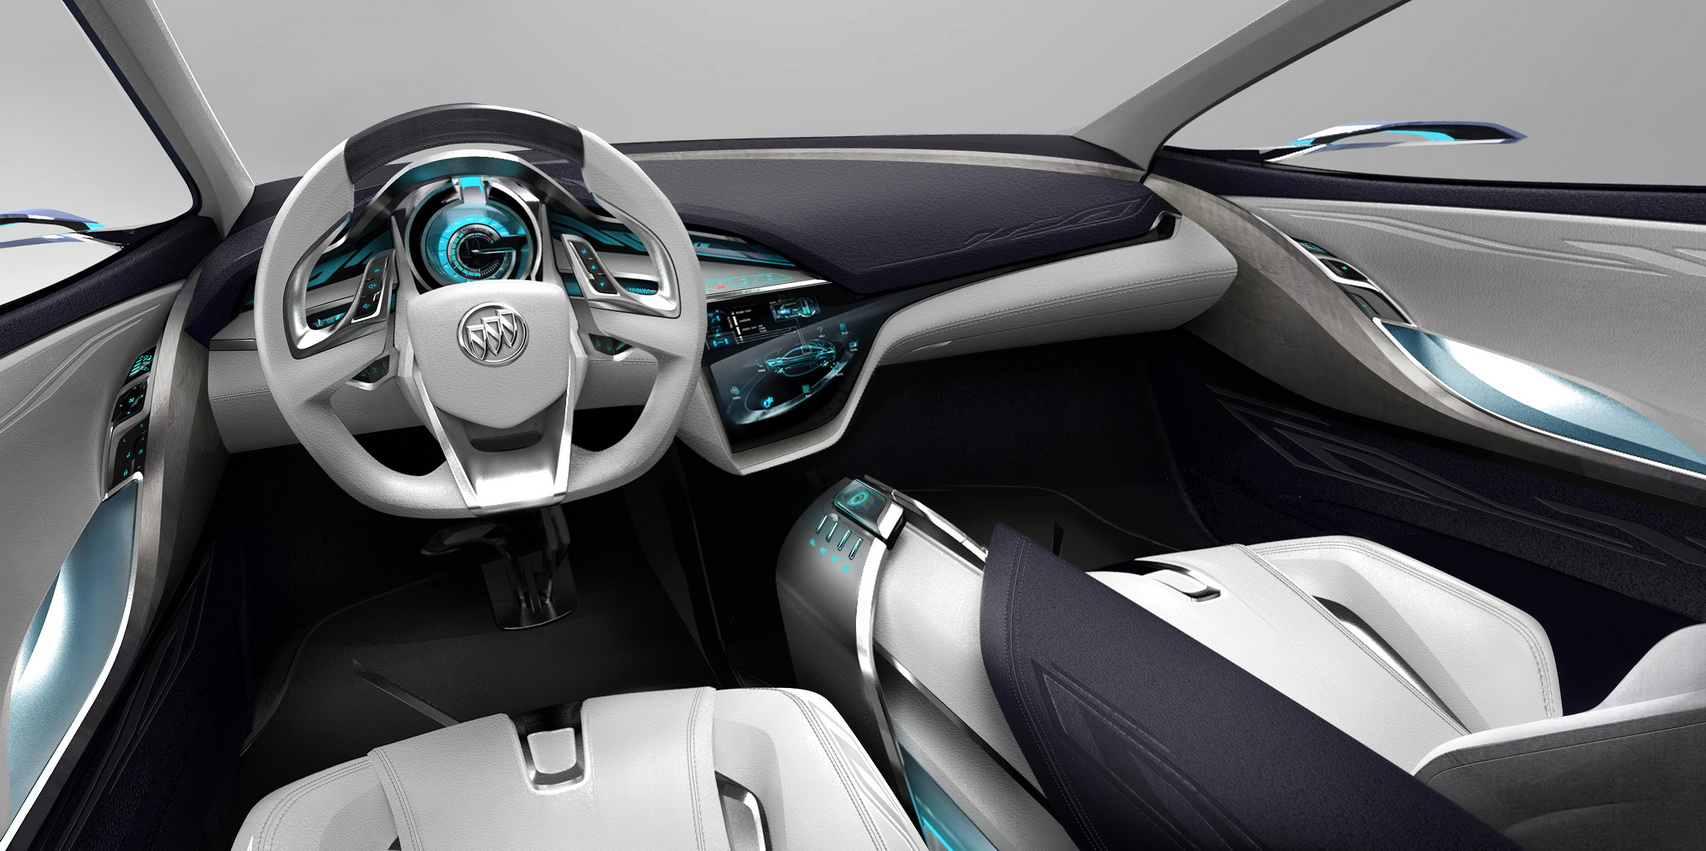 2011 Buick Envision Concept | Top Speed. »